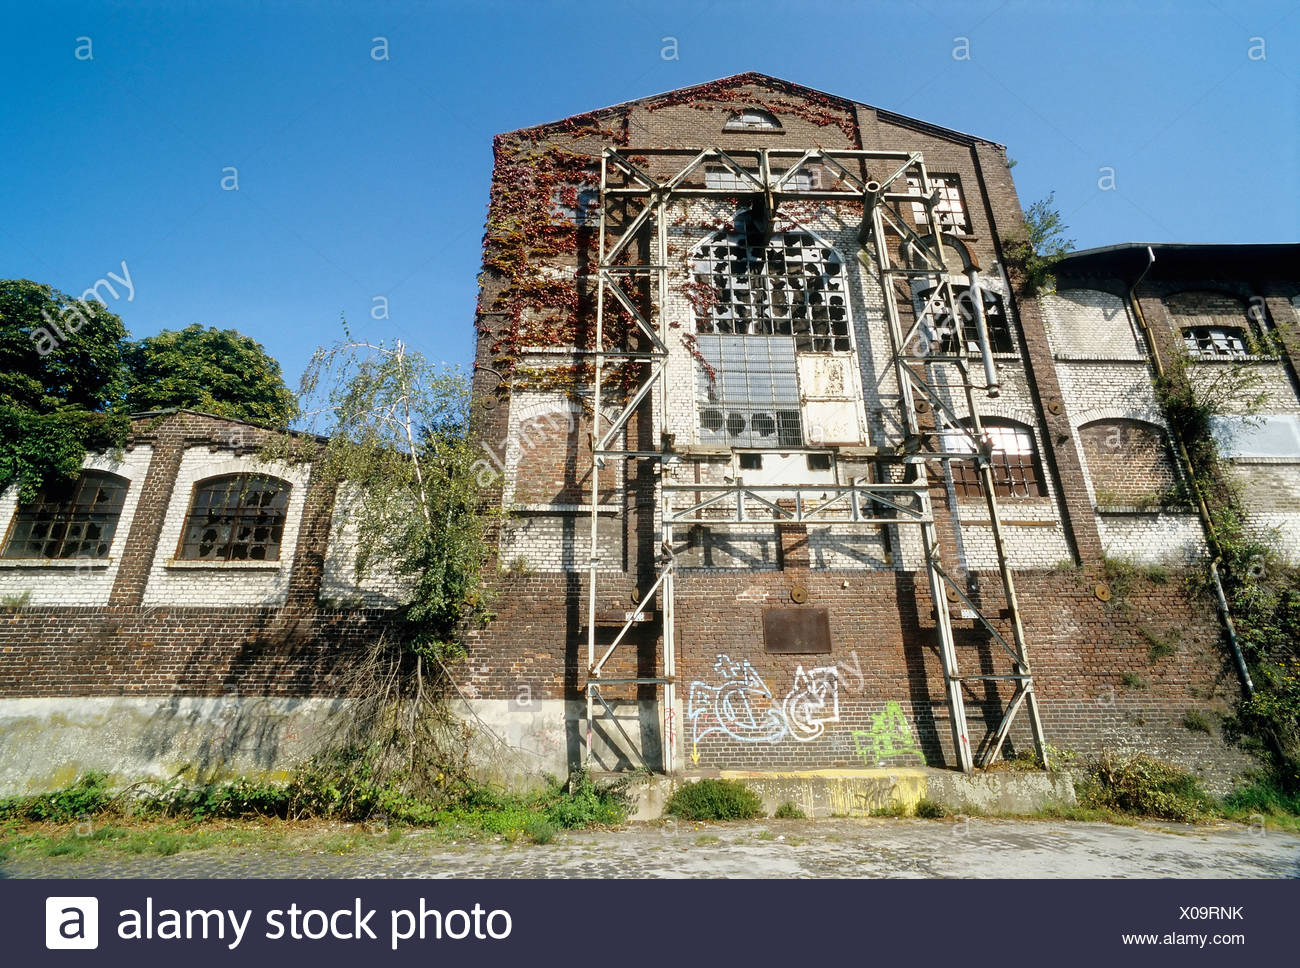 Ruined storage warehouse, Alter Rheinhafen harbour, Uerdingen district, Krefeld, North Rhine-Westphalia, Germany, Europe - Stock Image